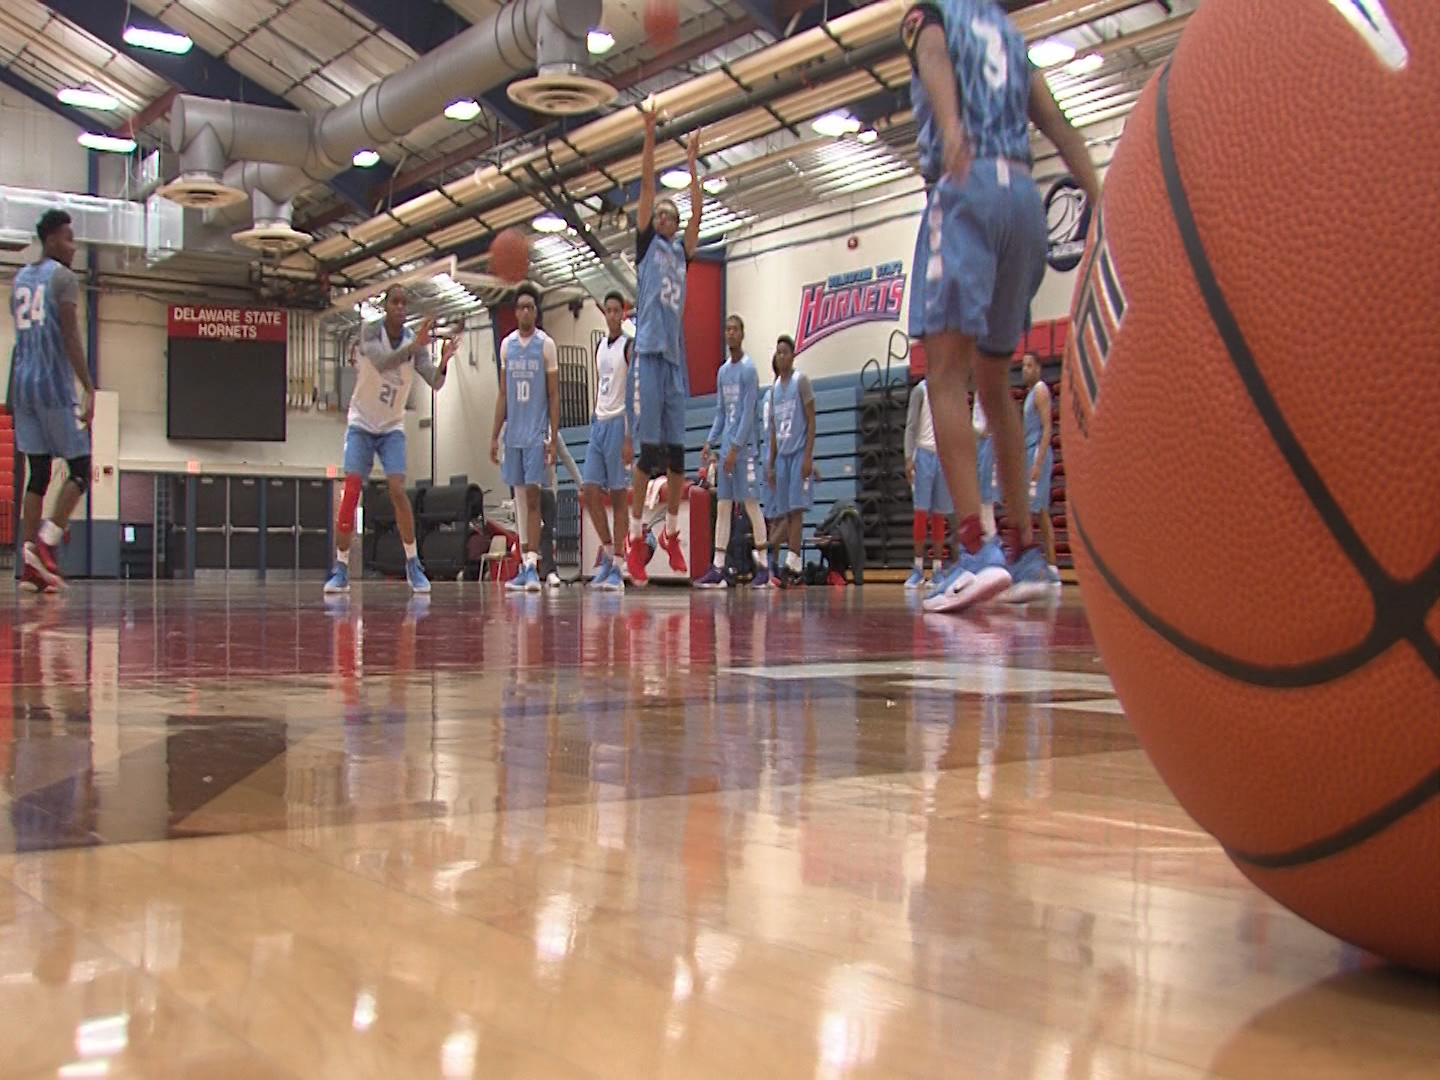 Delaware State University prepares for the upcoming basketball season